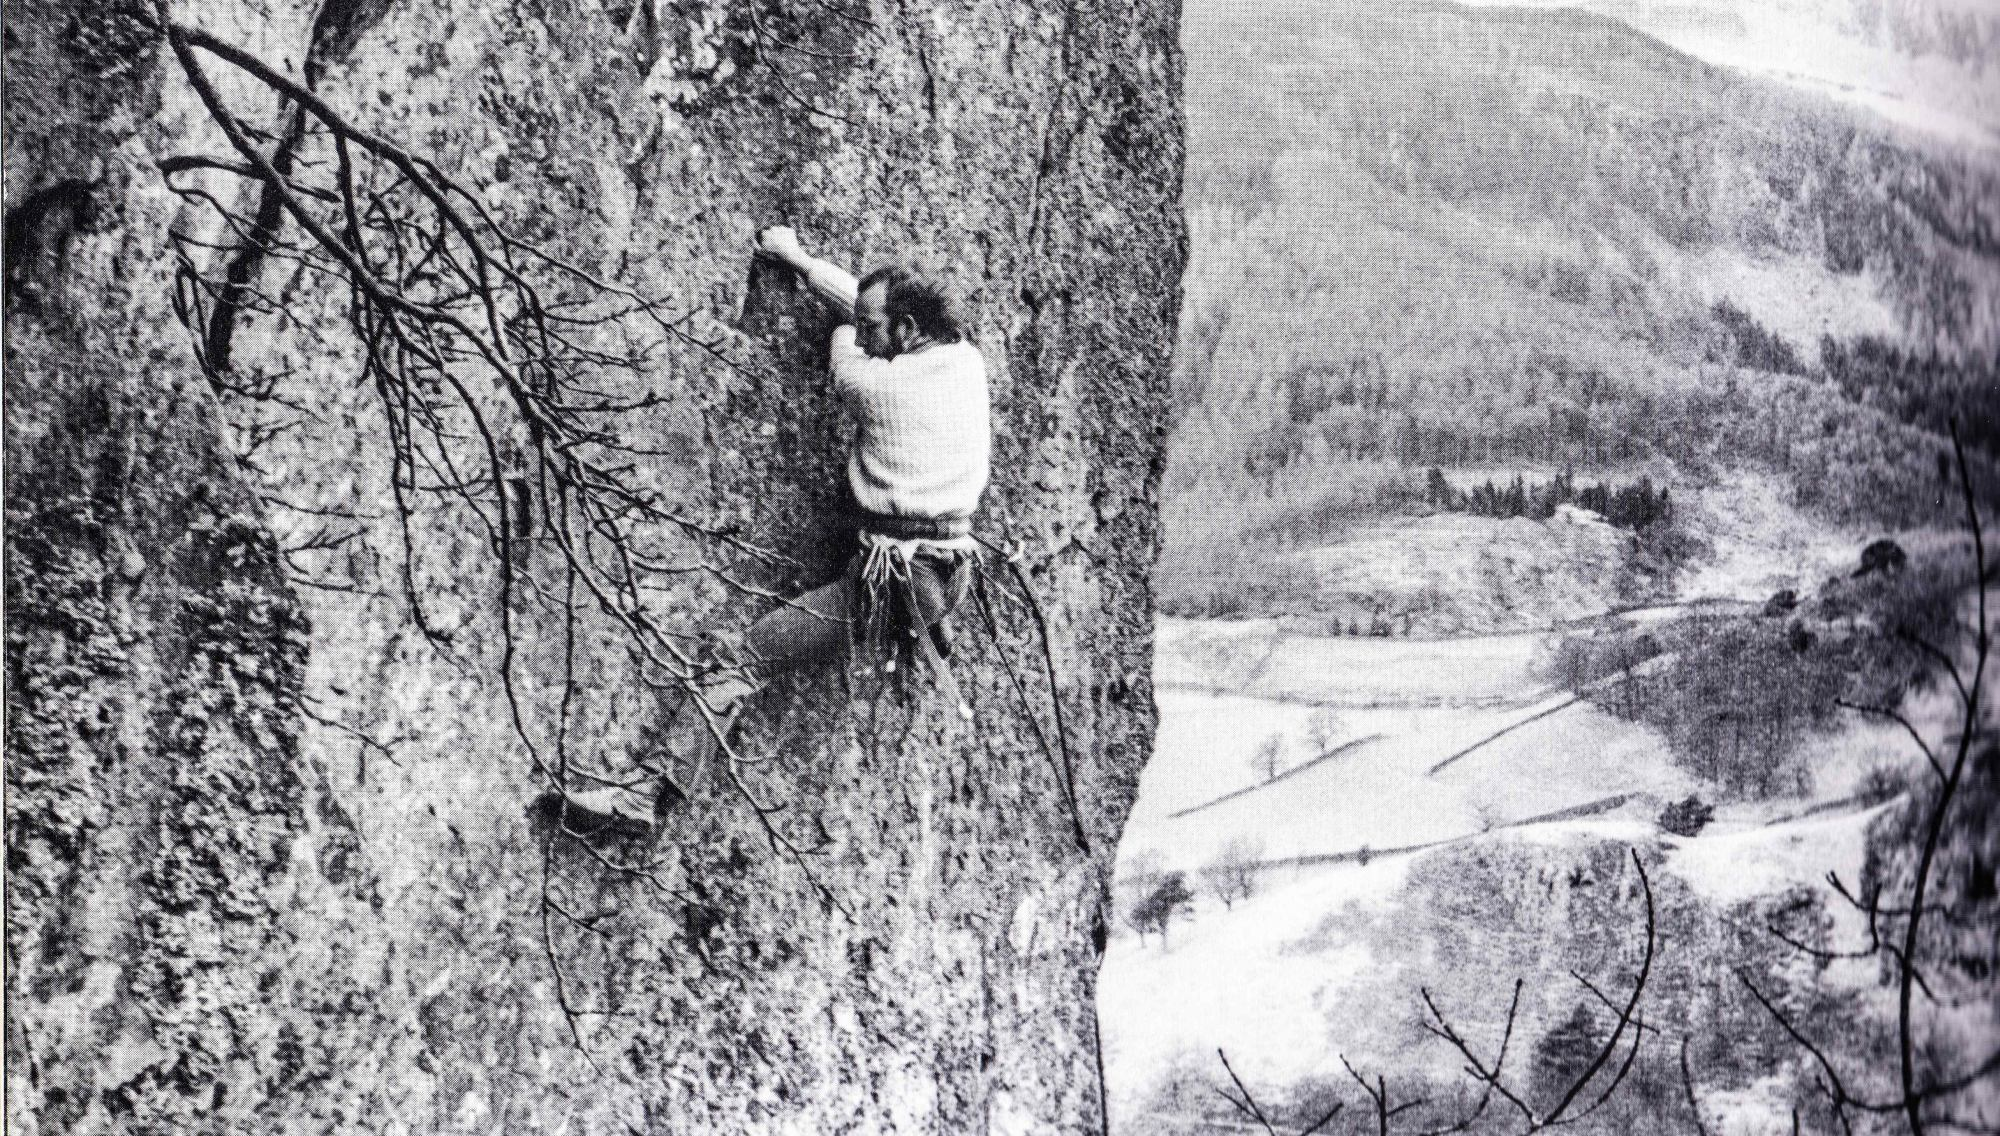 Ed Grindley on North Crag Eliminate